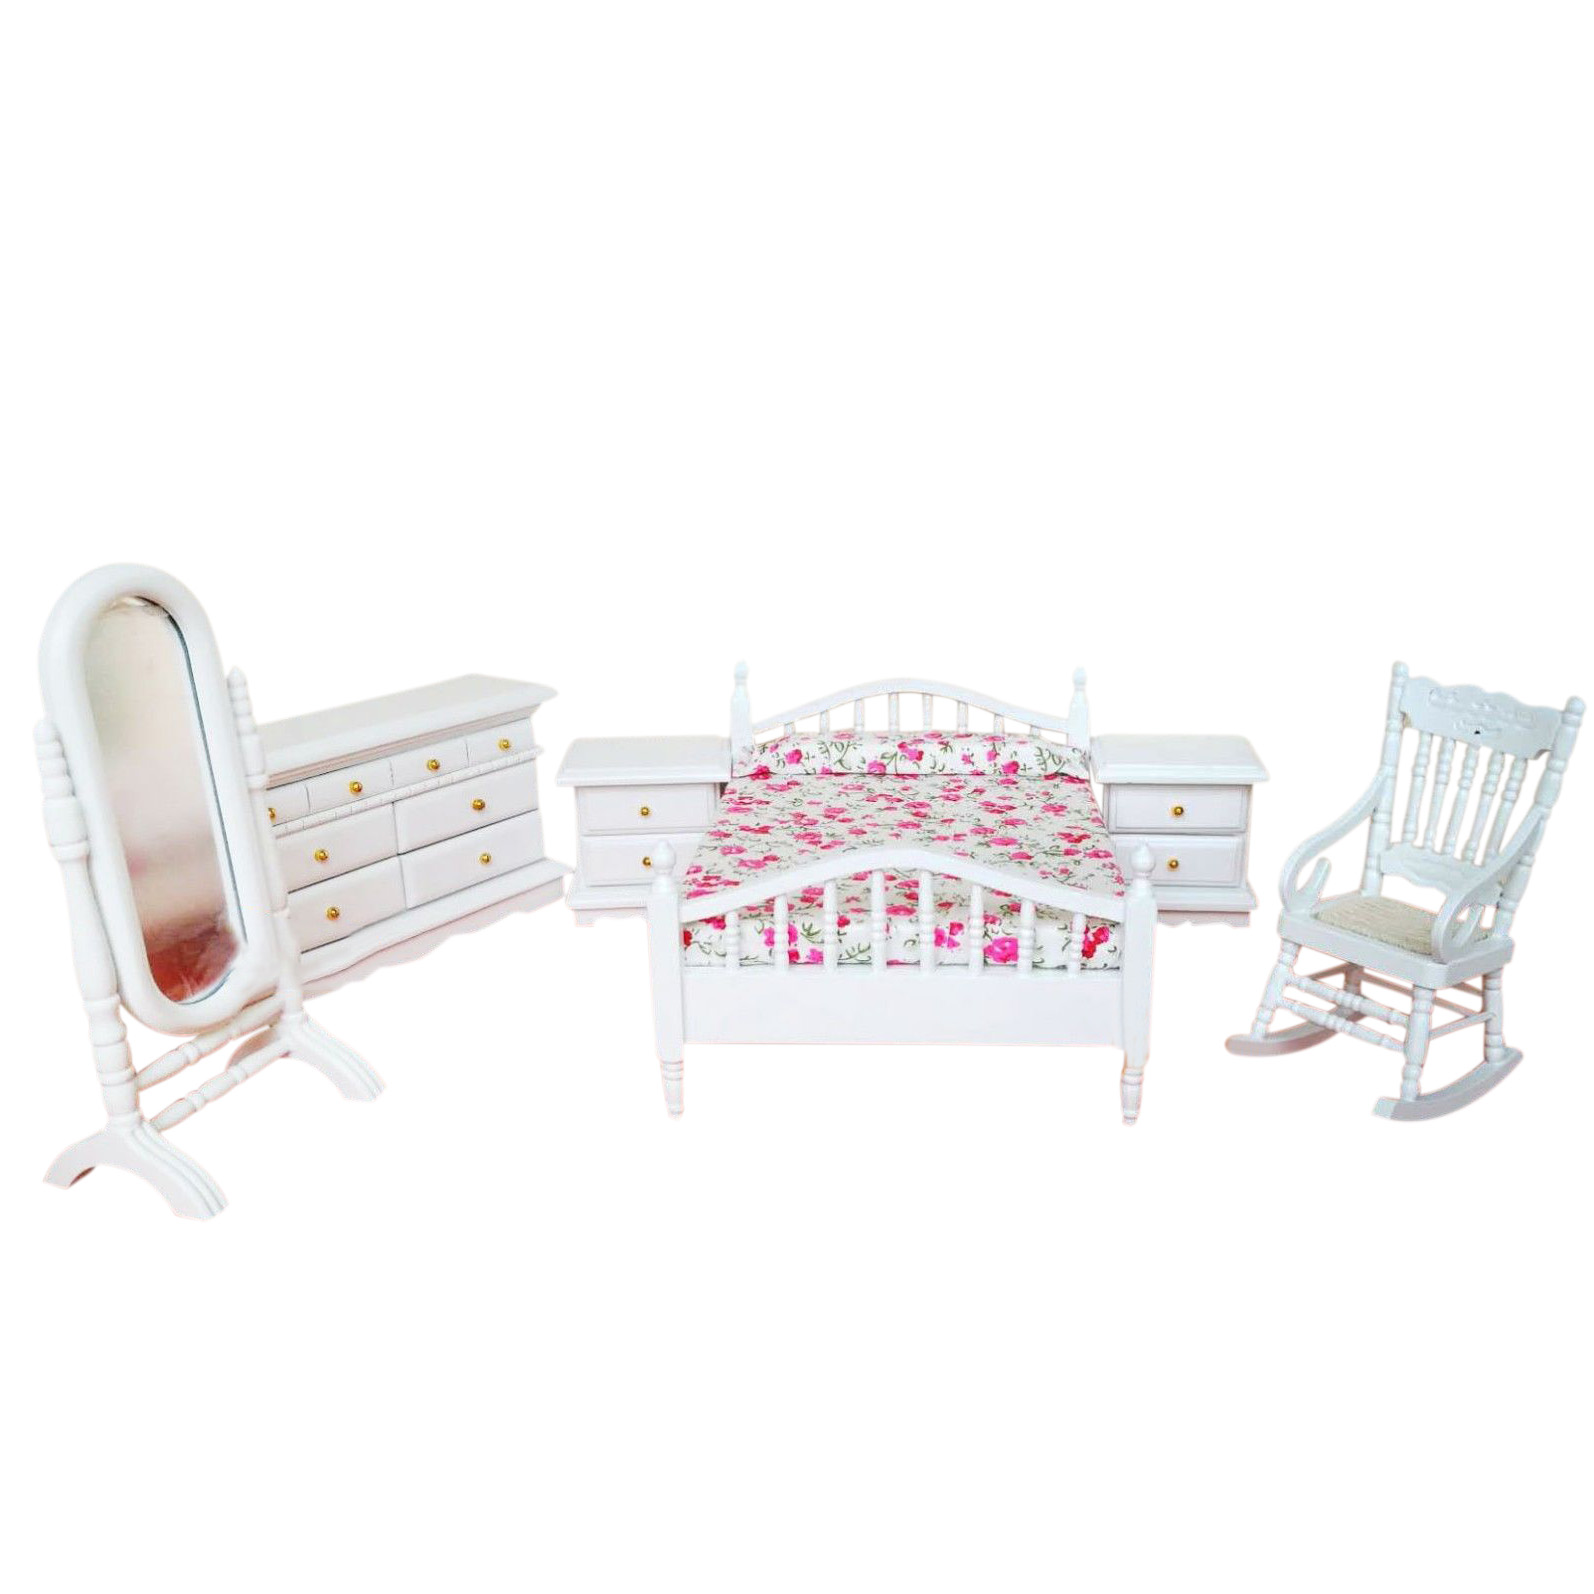 6 PCS/set Dollhouse Bedroom Furniture <font><b>Bed</b></font> Rocking Chair Dressing Mirror Cabinet image